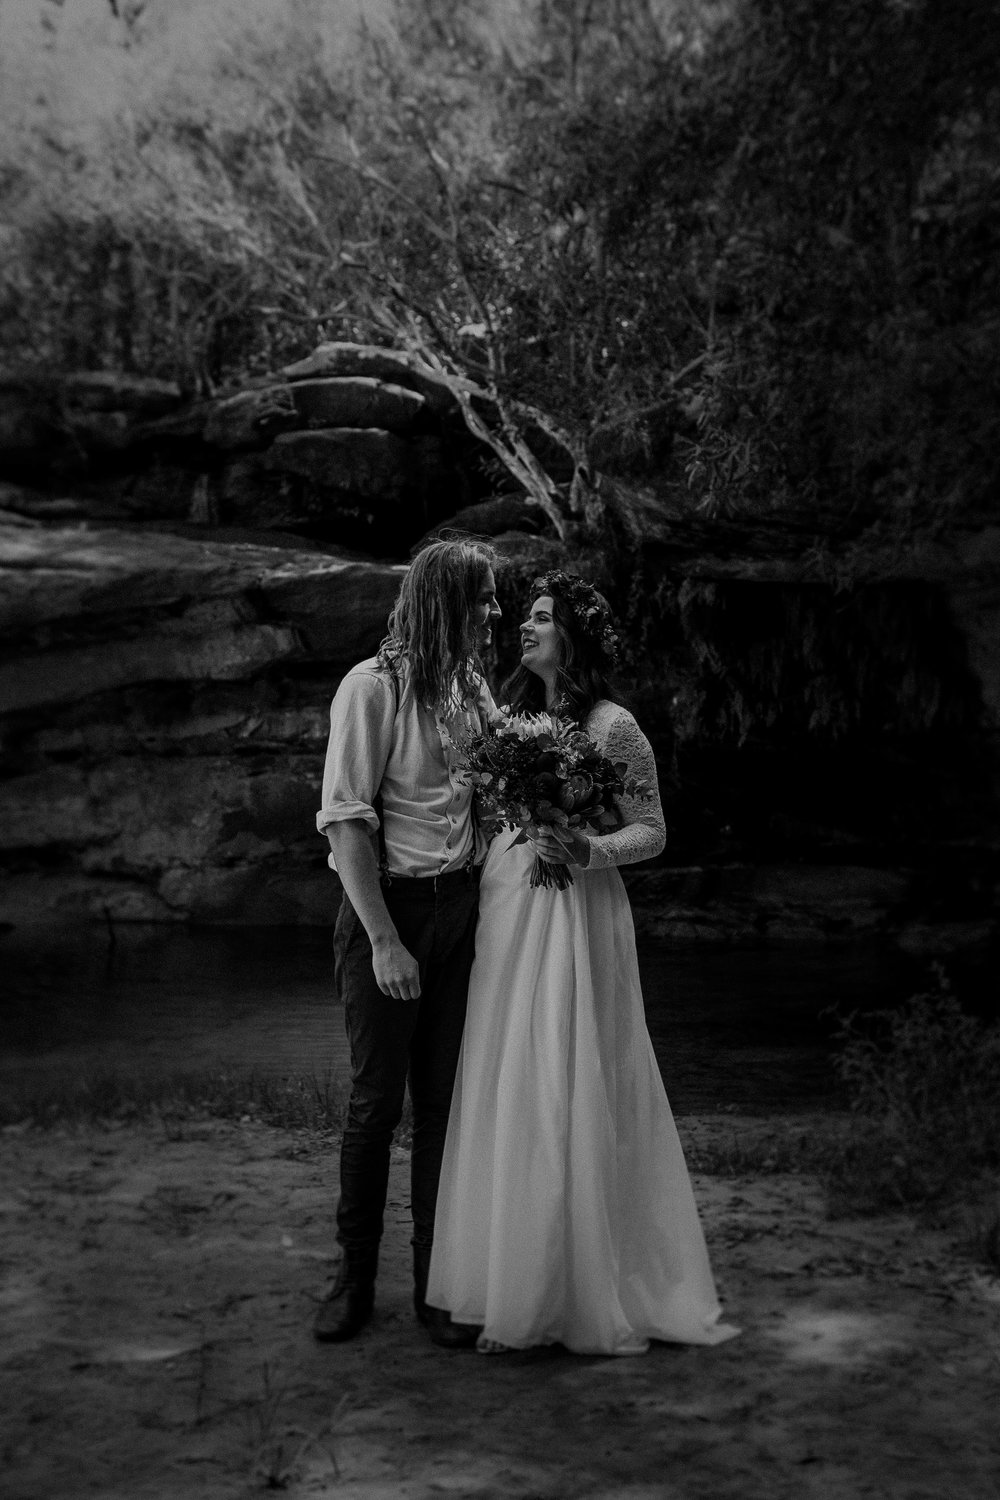 beth & caleb - kings & thieves elopement wedding photography -- submission 129.jpg